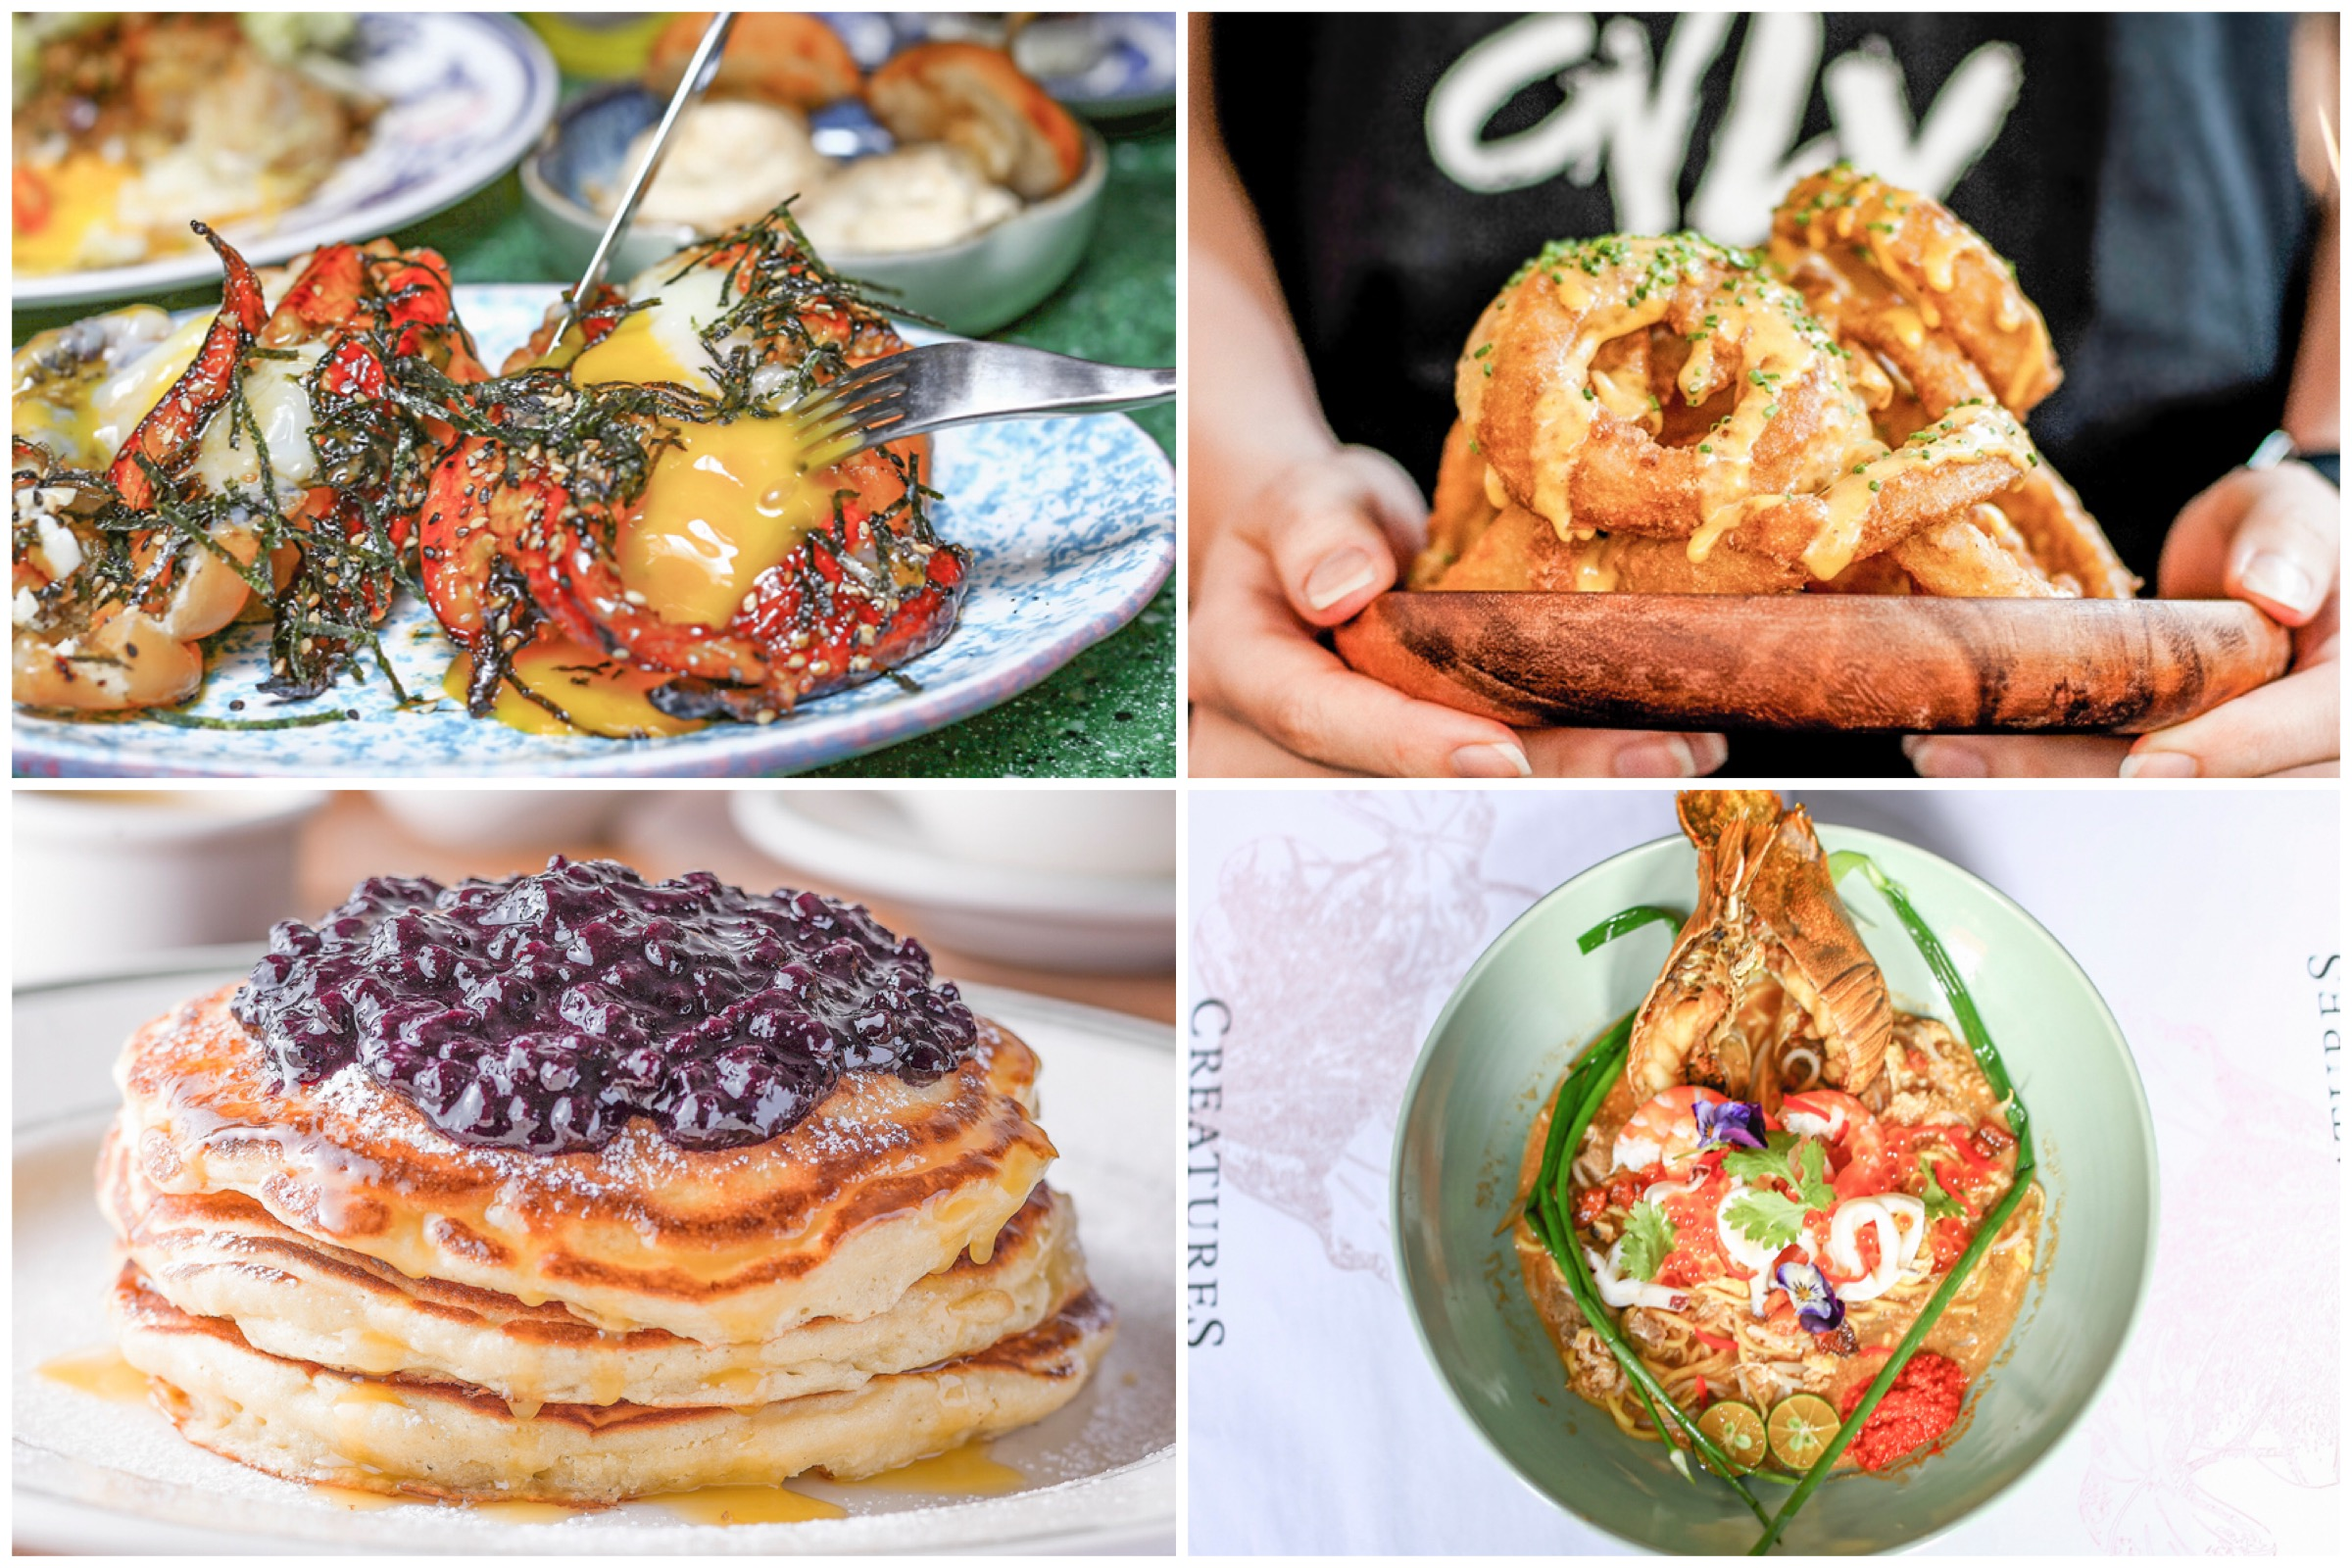 10 Awesome Brunch Places In Singapore To Satisfy Your Cravings